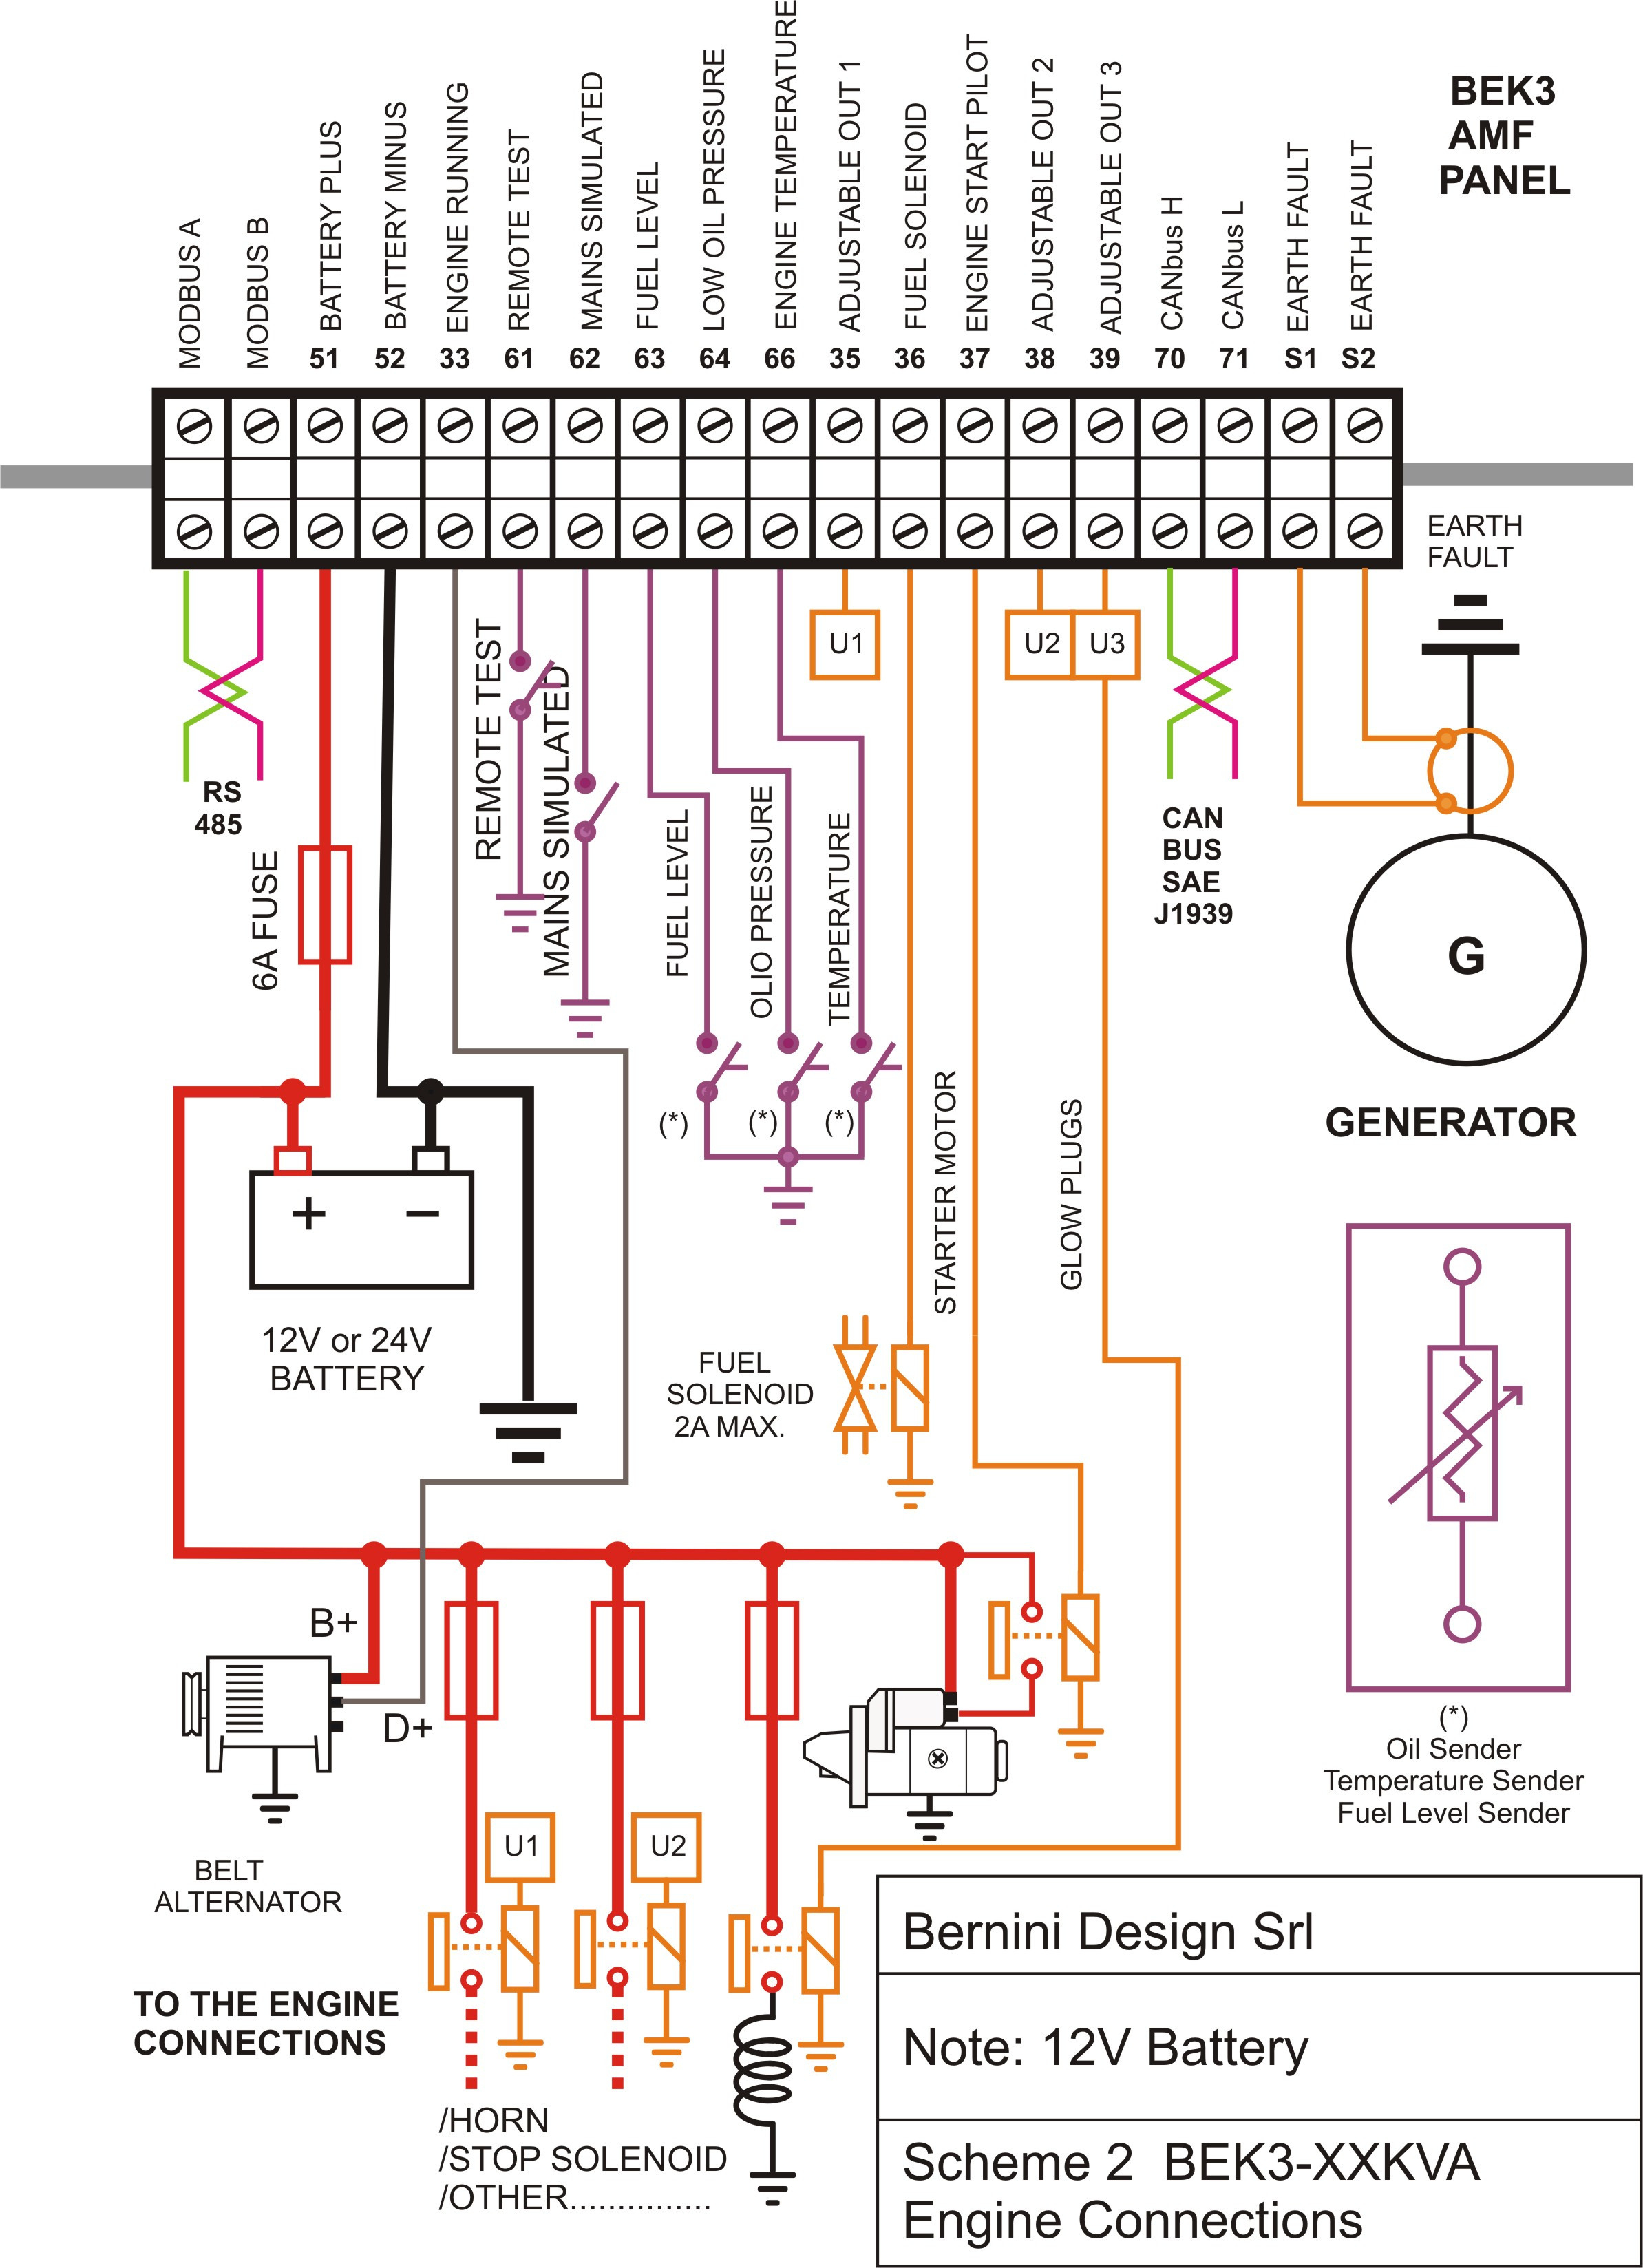 Wilson Alternator Wiring Diagram - Webtor - Wilson Alternator Wiring Diagram